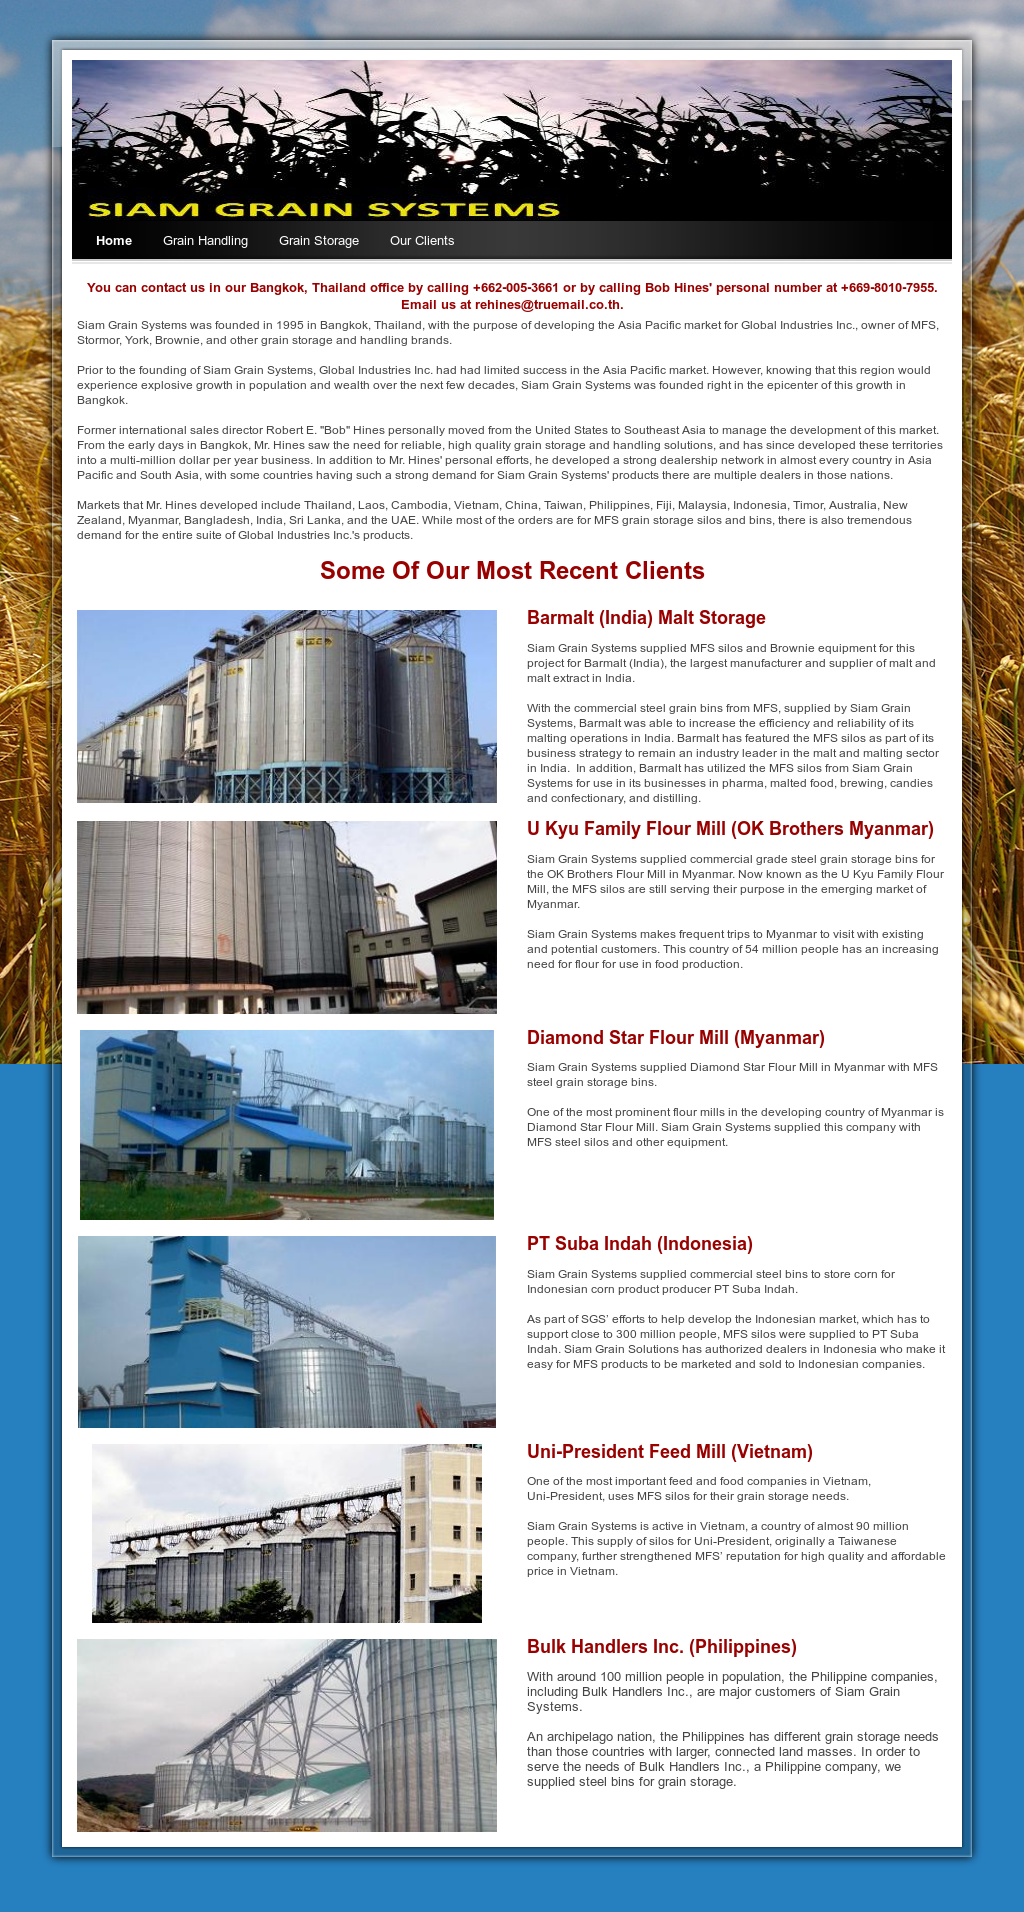 Siam Grain Systems Competitors, Revenue and Employees - Owler